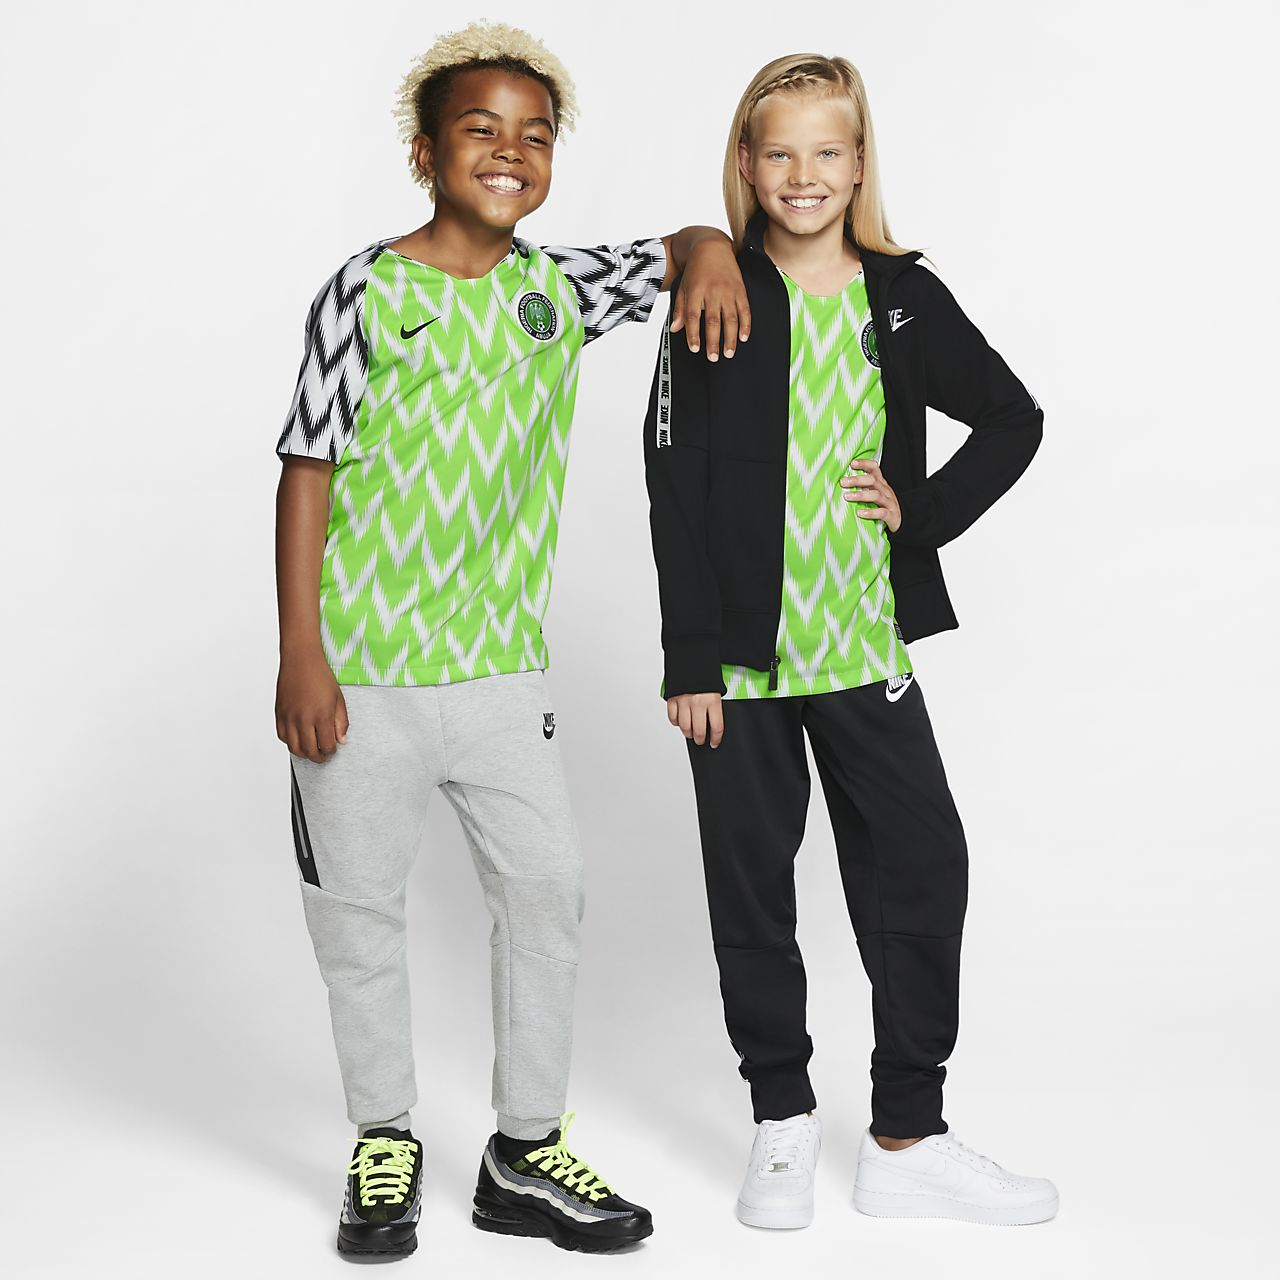 2f0bb1504 2019 Nike Youth Soccer Uniforms - Nils Stucki Kieferorthopäde